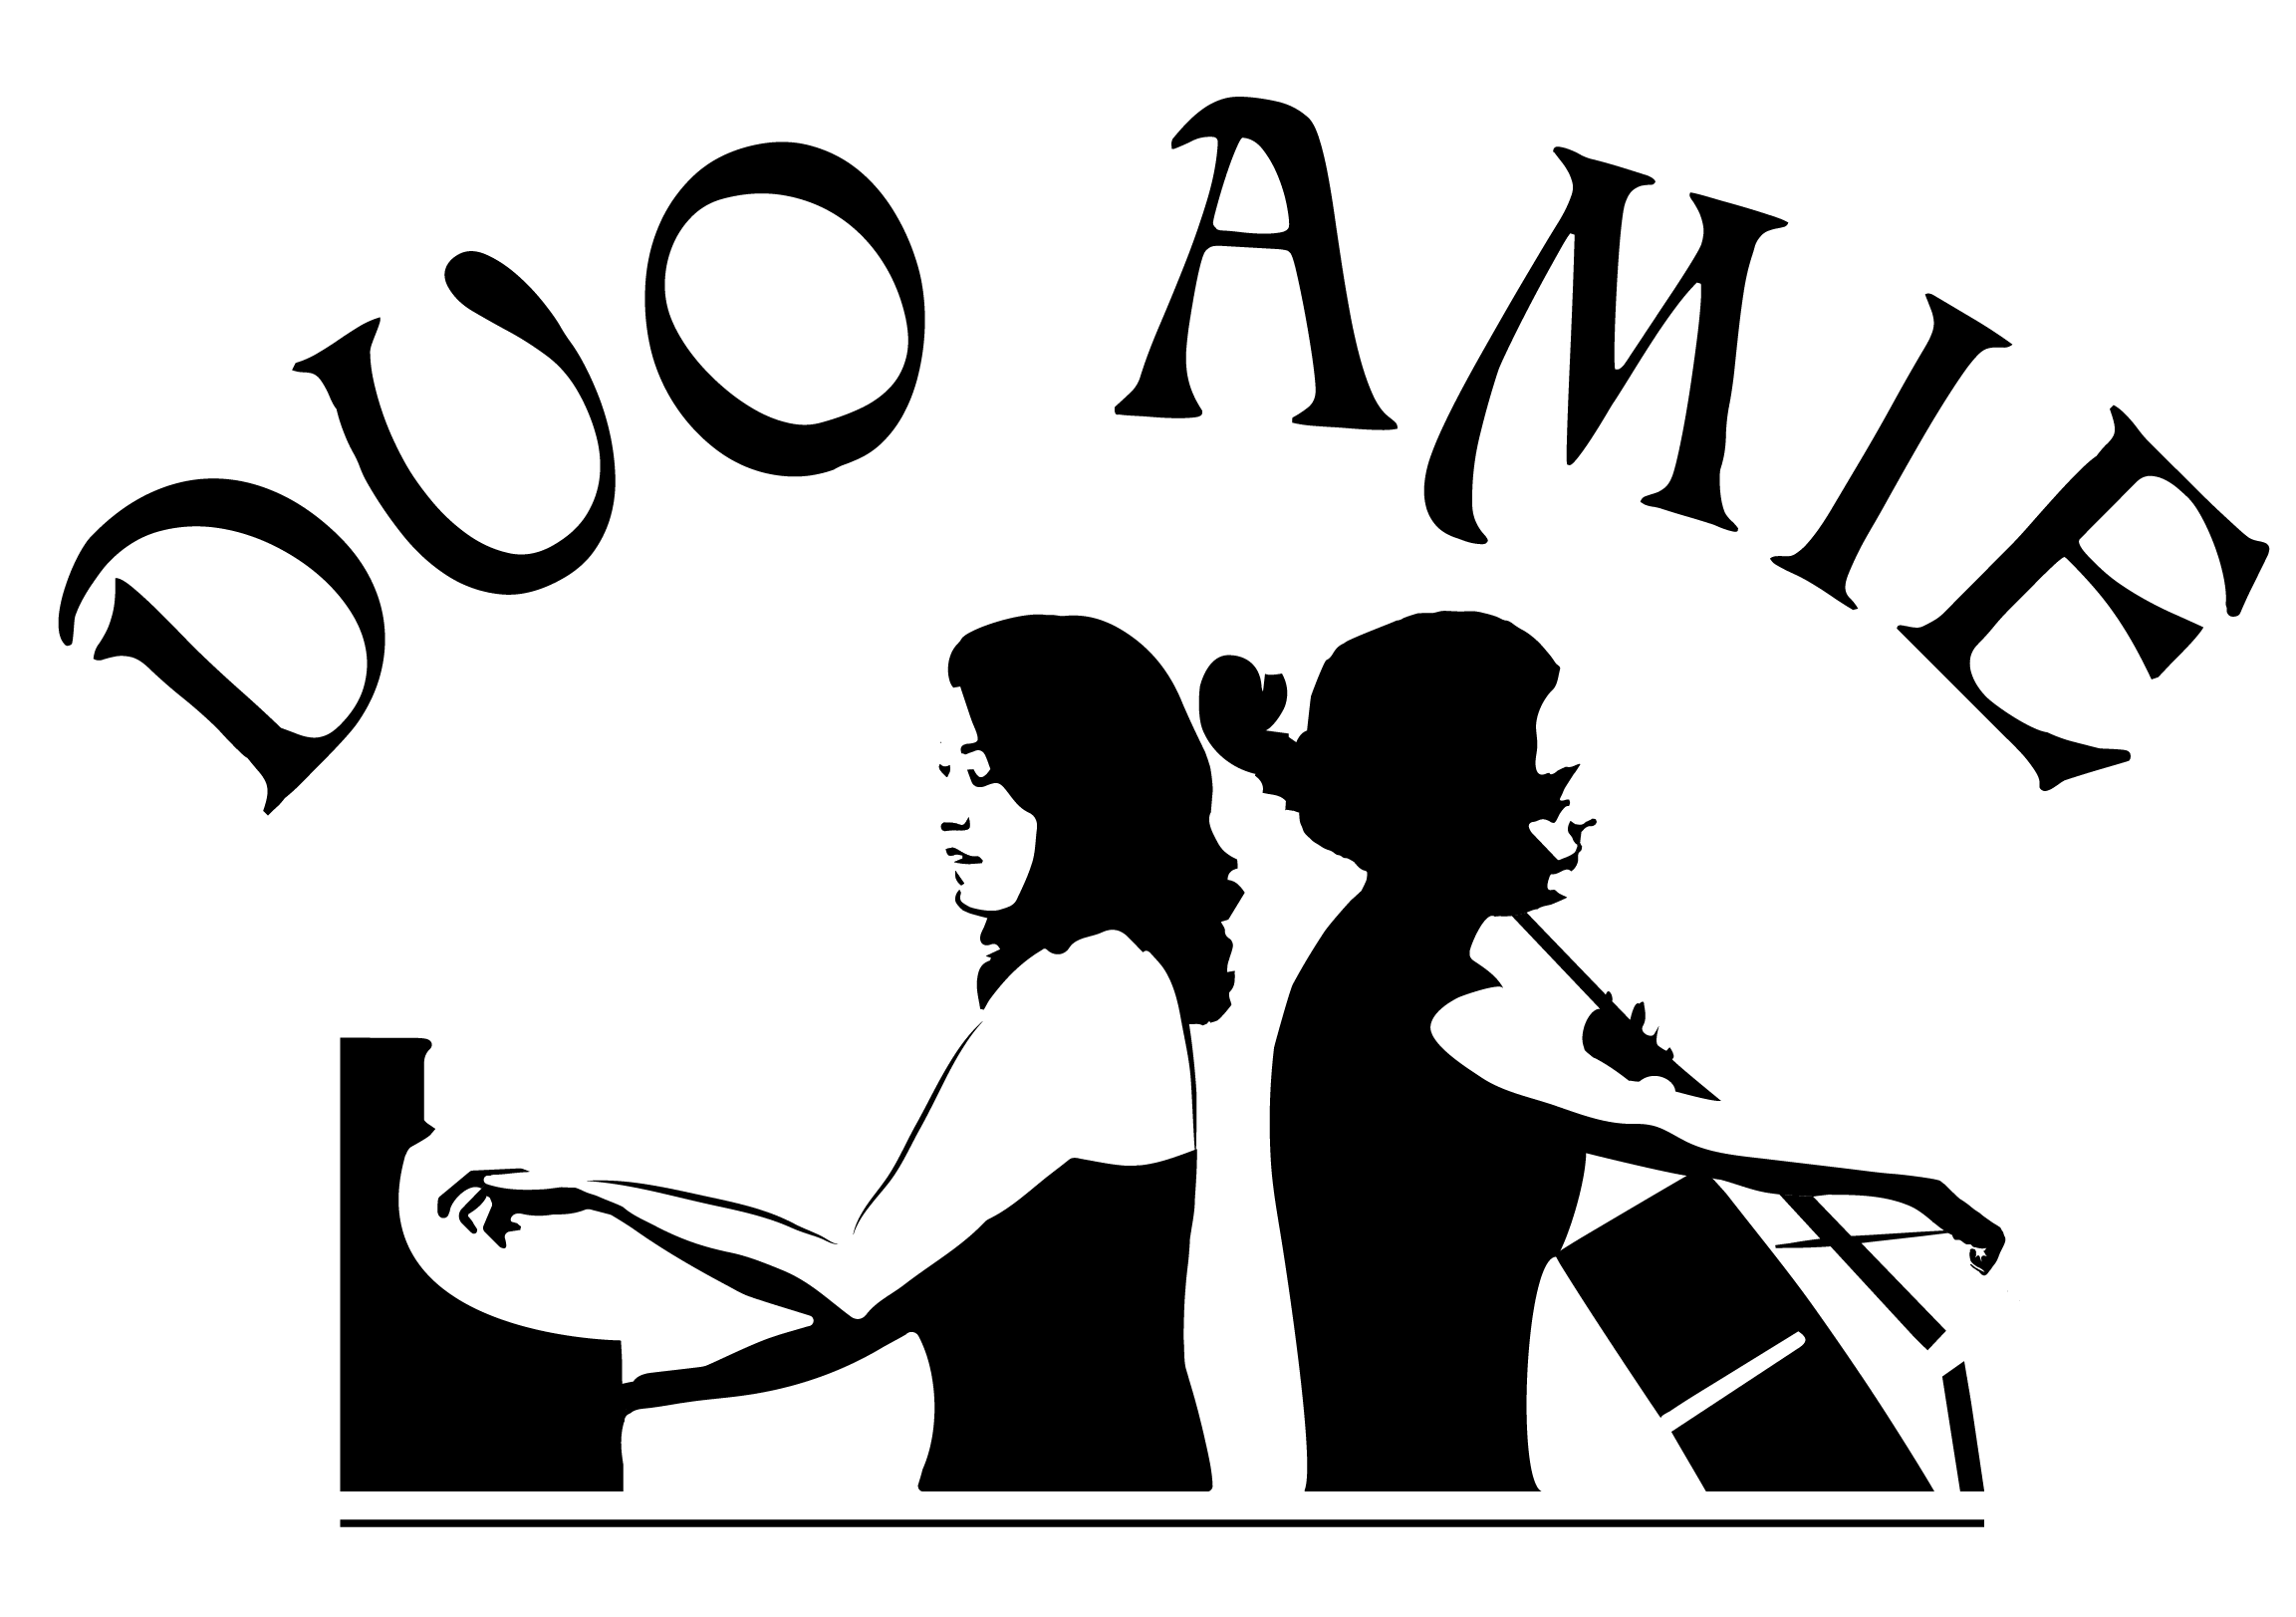 duoamielogo-Black and White transparent cropped.png